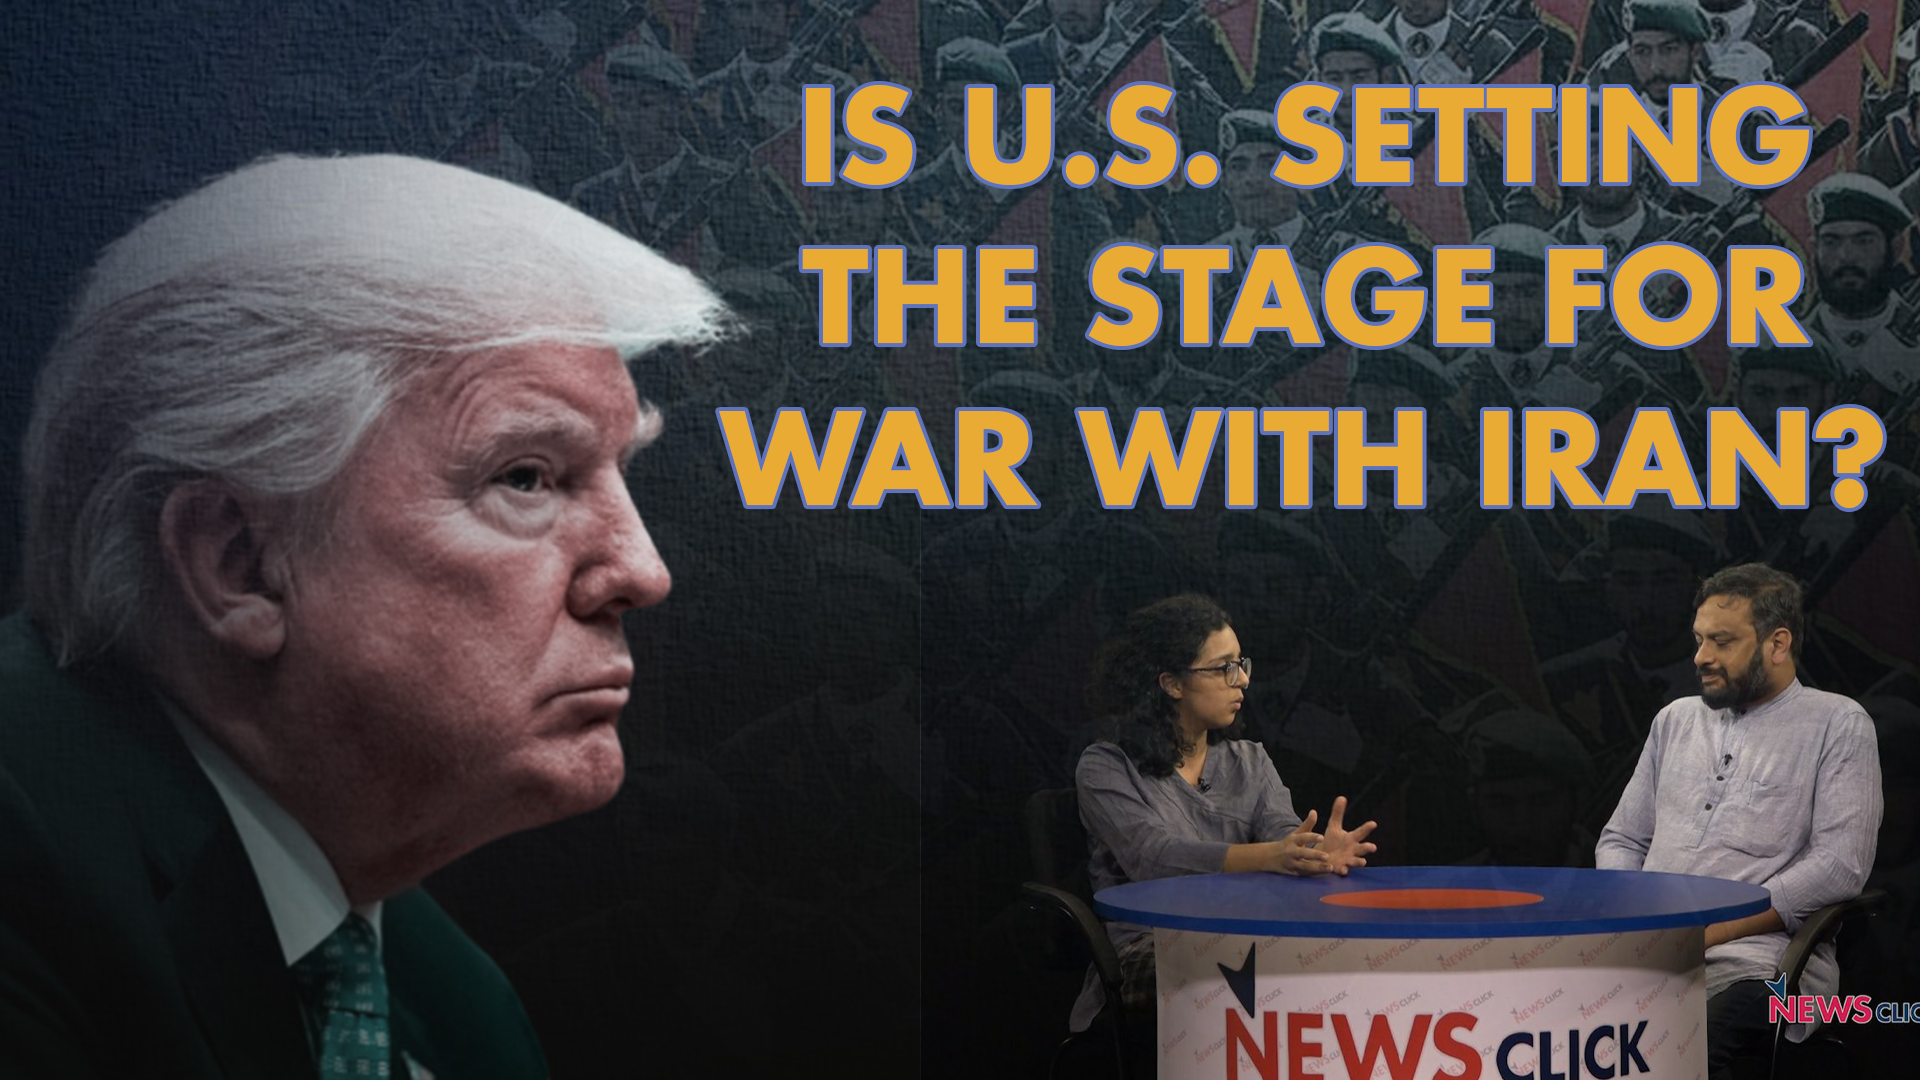 War with Iran?